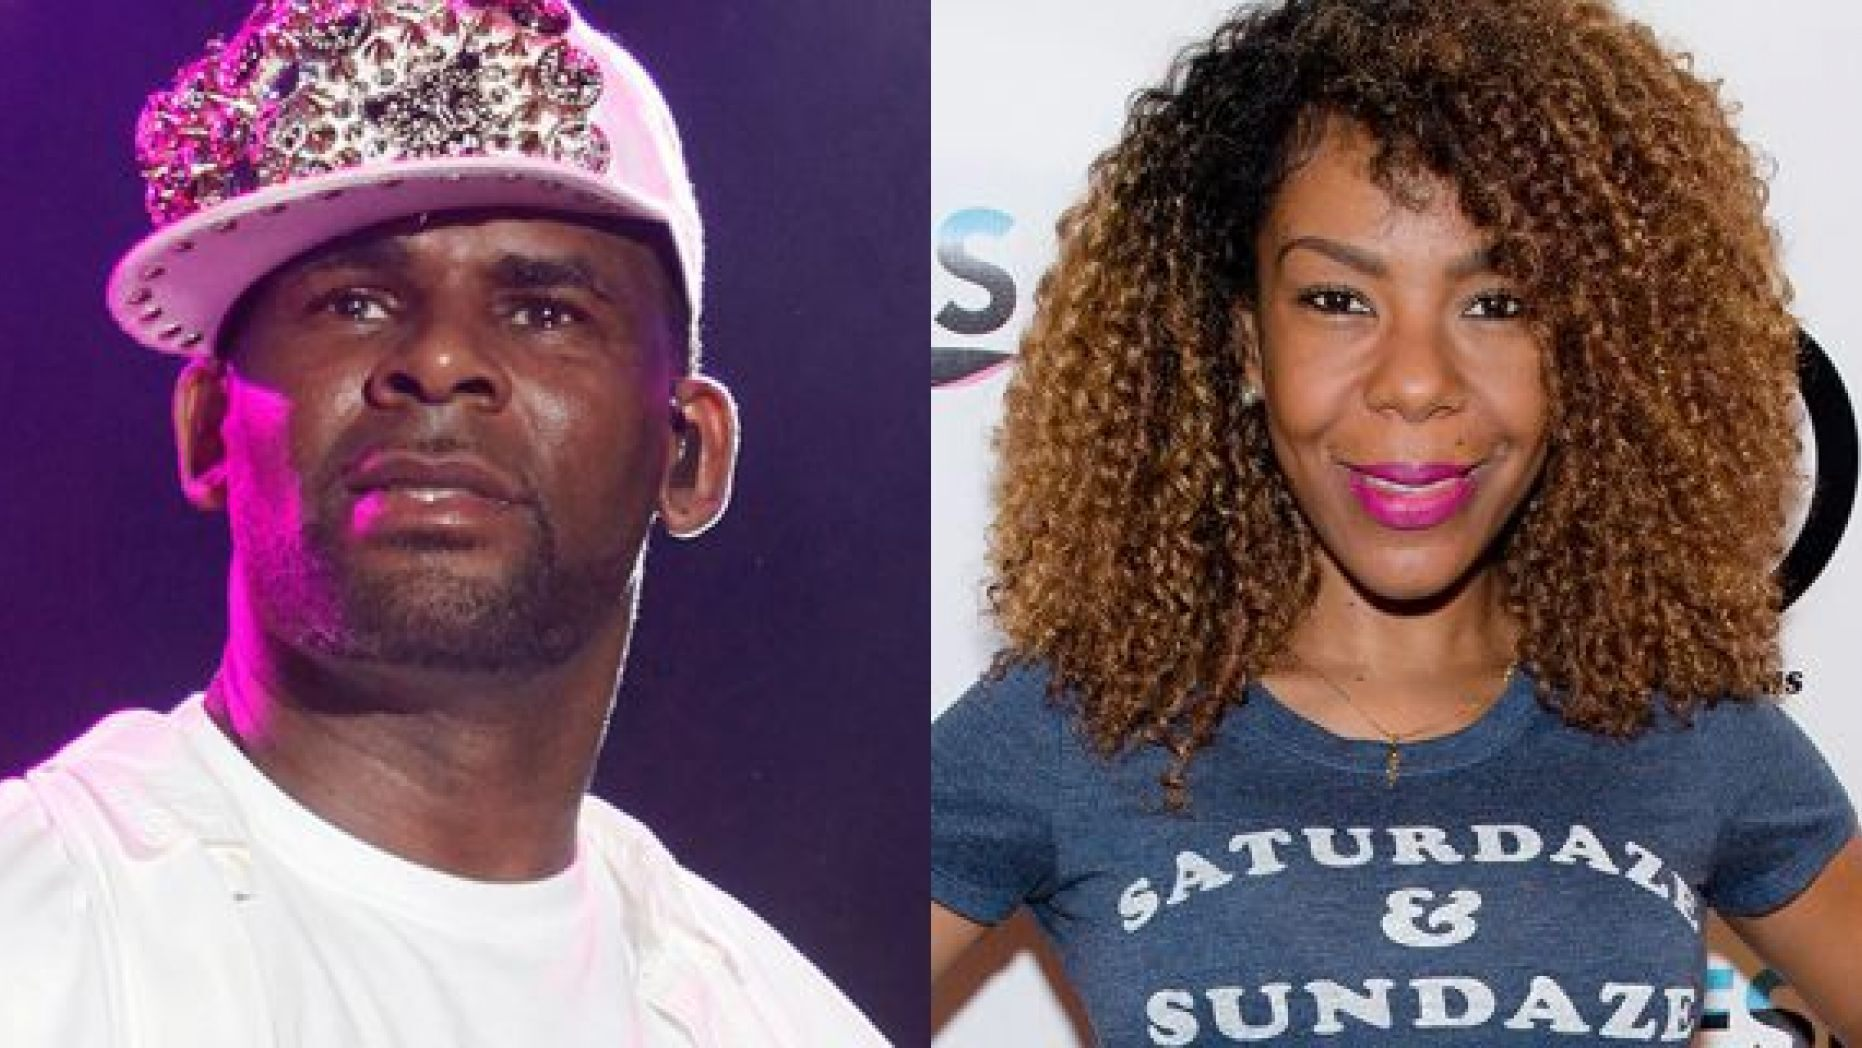 R. Kelly Just Told His Ex-Wife She Should Be Working At A Fast Food Joint To Take Care Of Their Kids